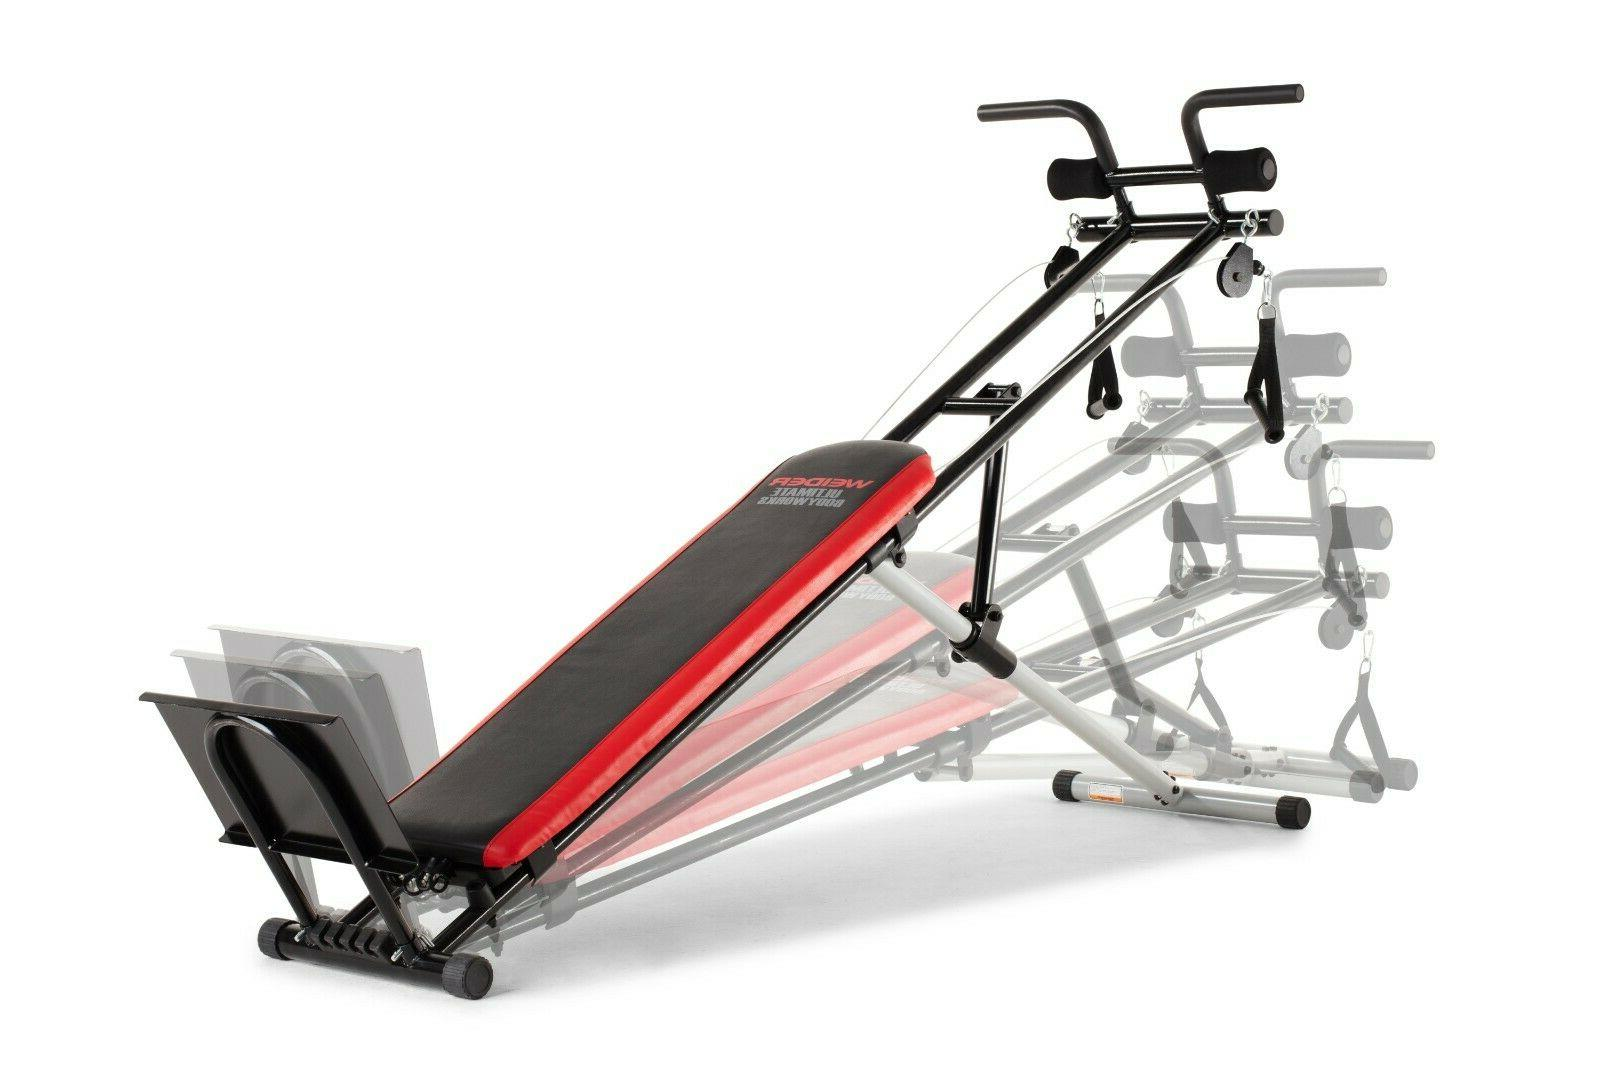 Weider Gym Exercise Body Works Bench Fitness Strength Machin